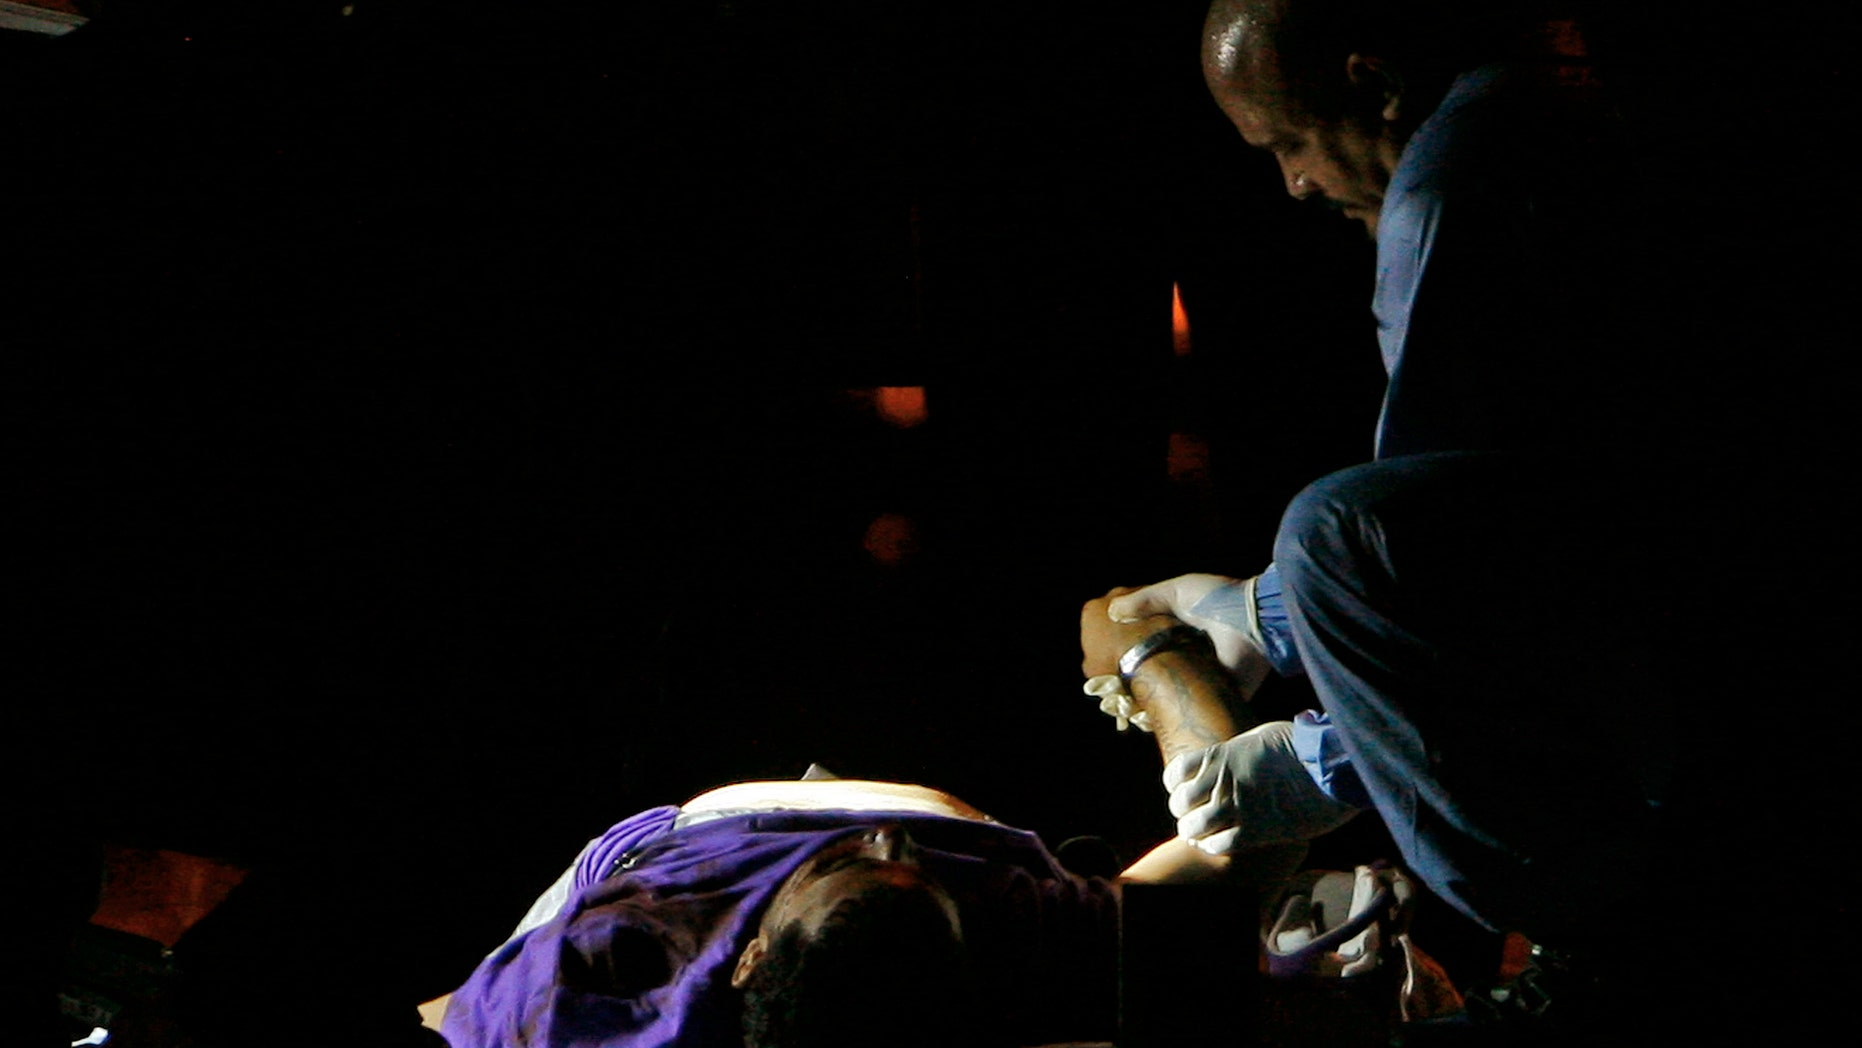 Oct. 2: A forensic investigator examines the body of a men killed by unidentified gunmen at a crime scene in Carolina, Puerto Rico.  (AP Photo/Ricardo Arduengo)